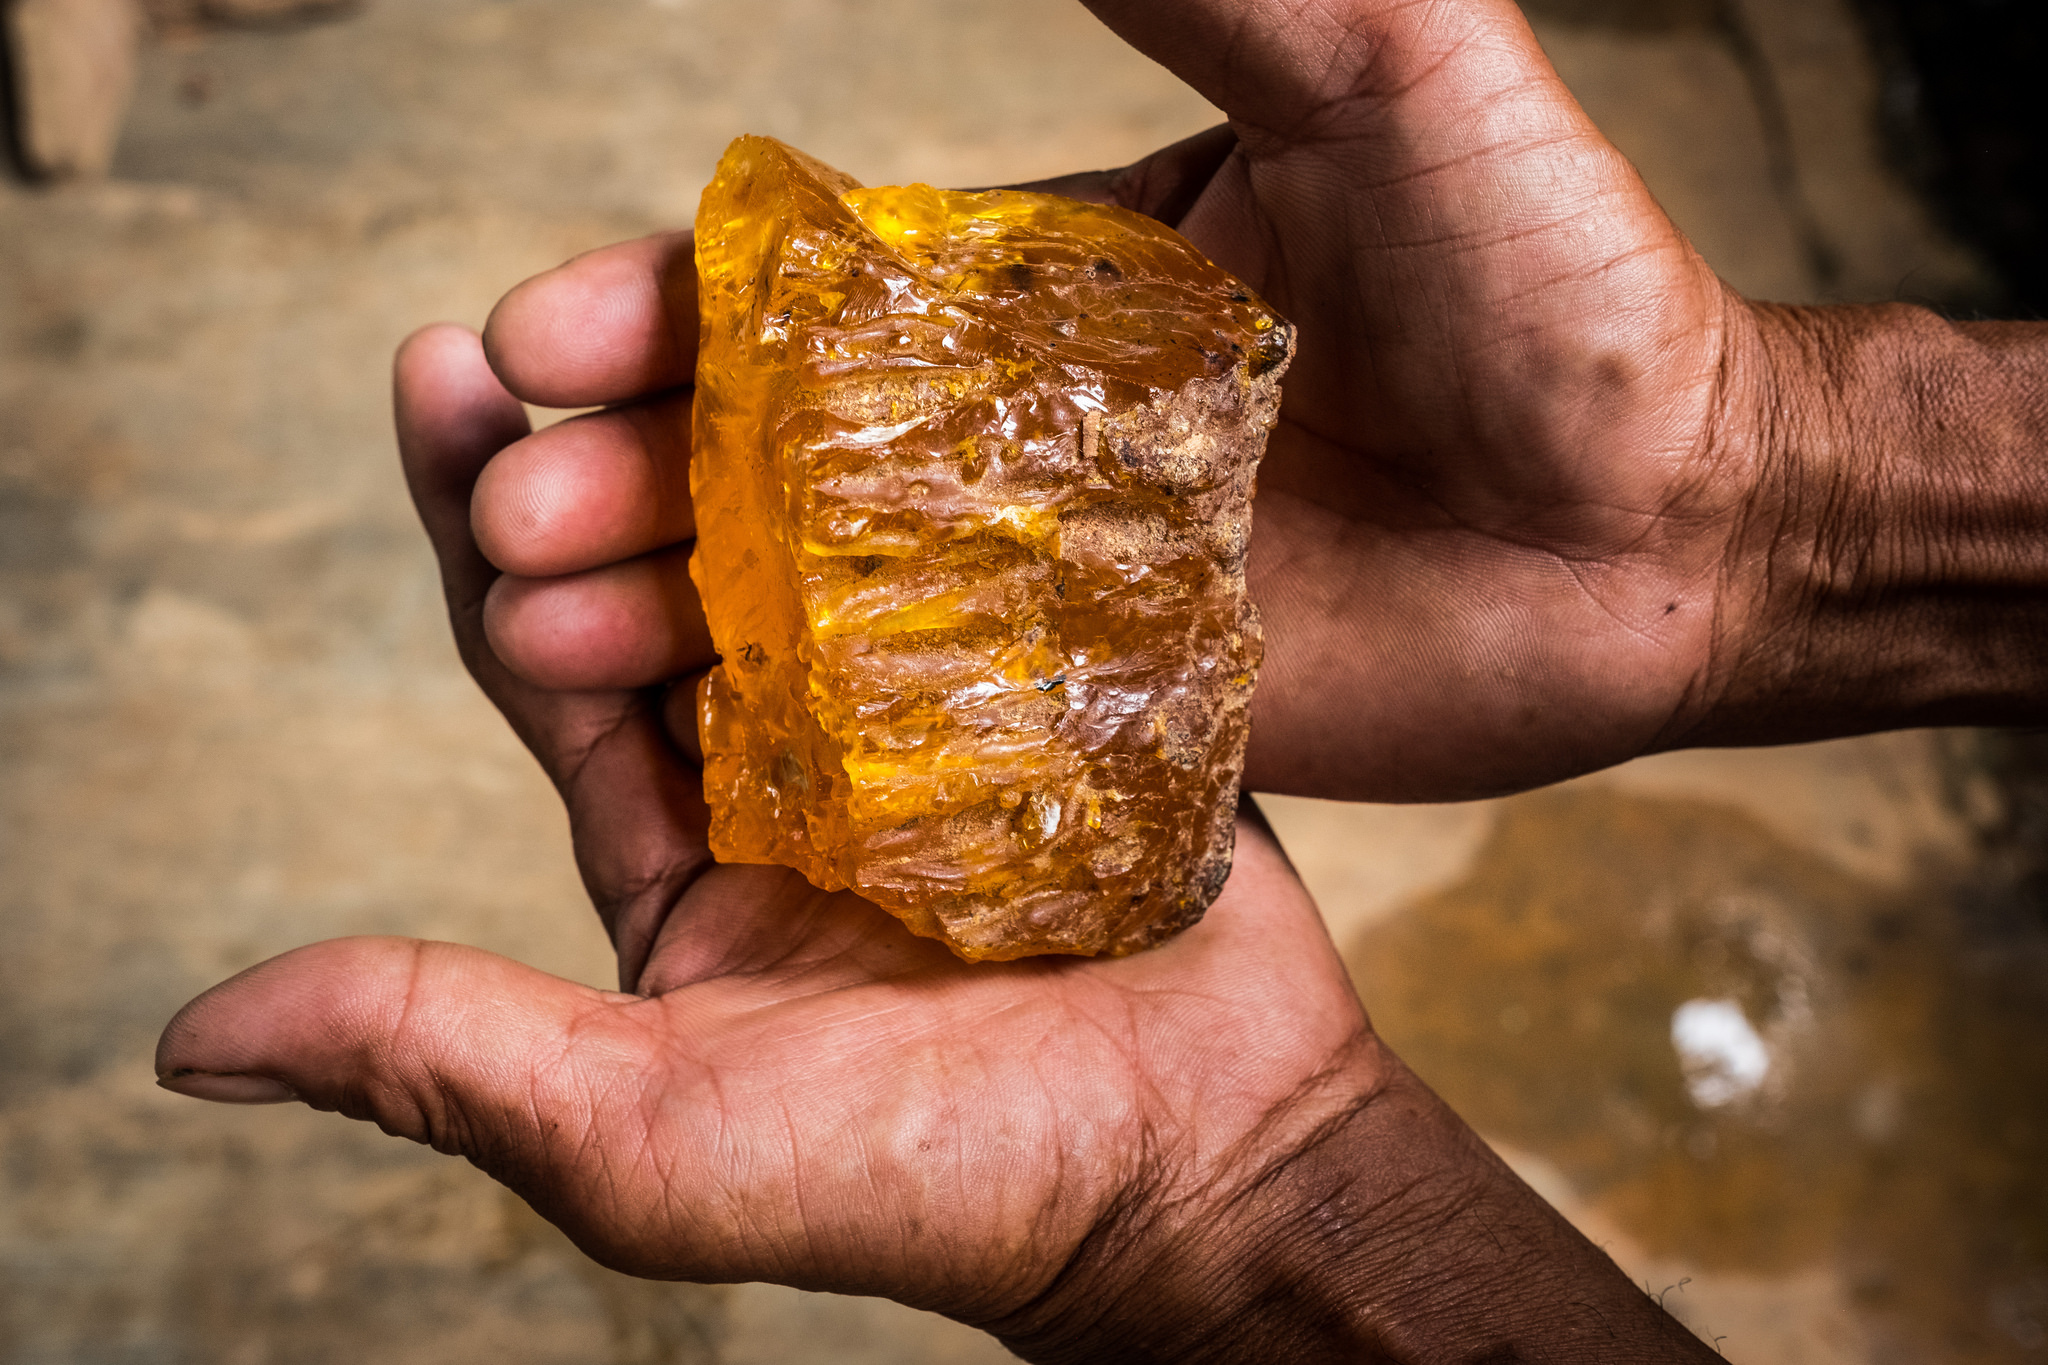 Two hands holding a chunk of resin